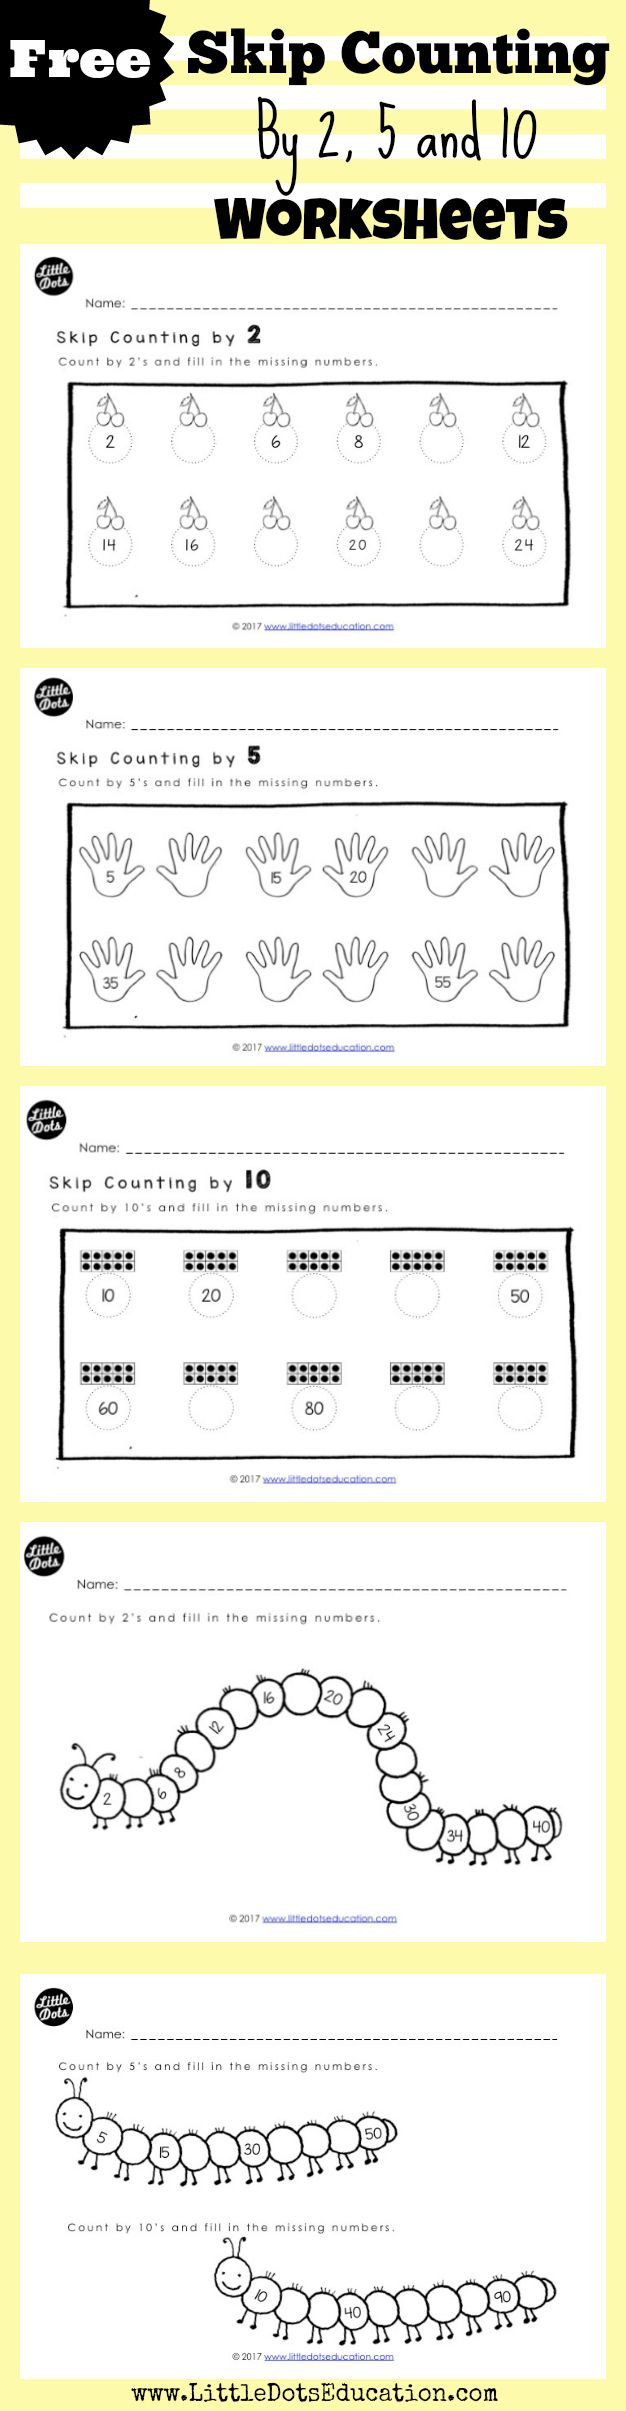 Skip Counting Worksheets First Grade Skip Count by 2 5 and 10 Worksheets for Kindergarten to